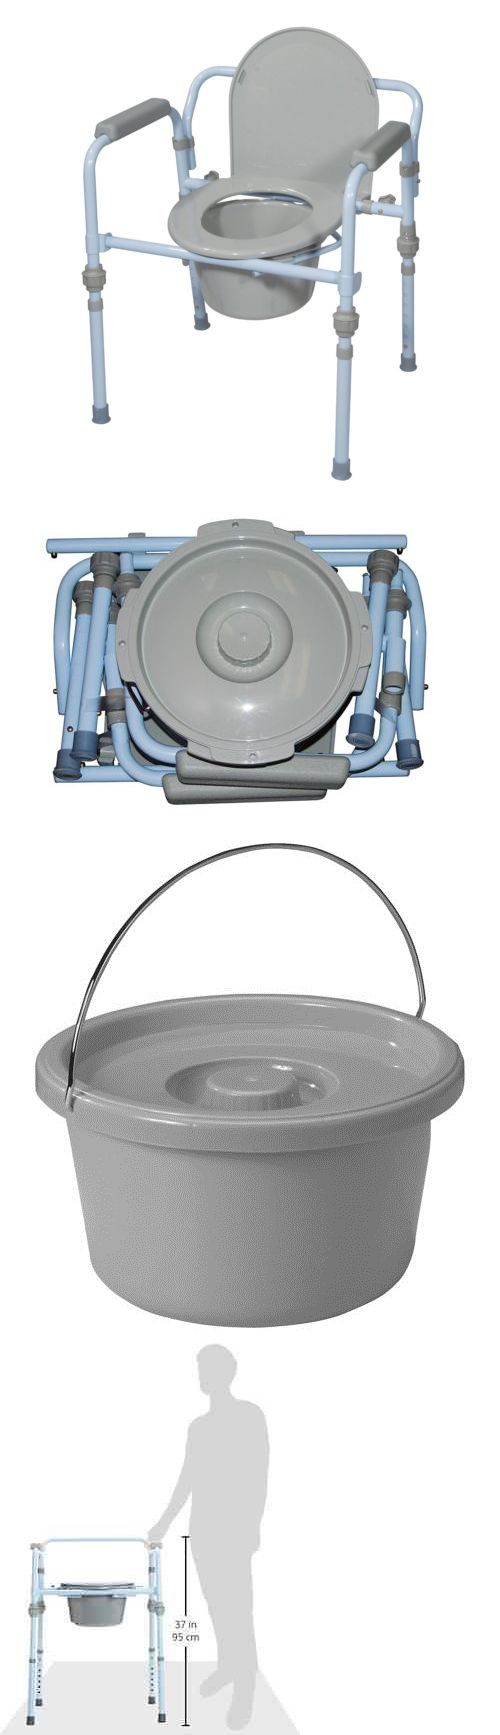 Portable commode folding bedside handicap adult toilet potty chair - Toilet Frames And Commodes Folding Commode Bedside Handicapped Toilet Seat Bucket Portable Safety Chair New Buy It Now Only 49 26 On Ebay